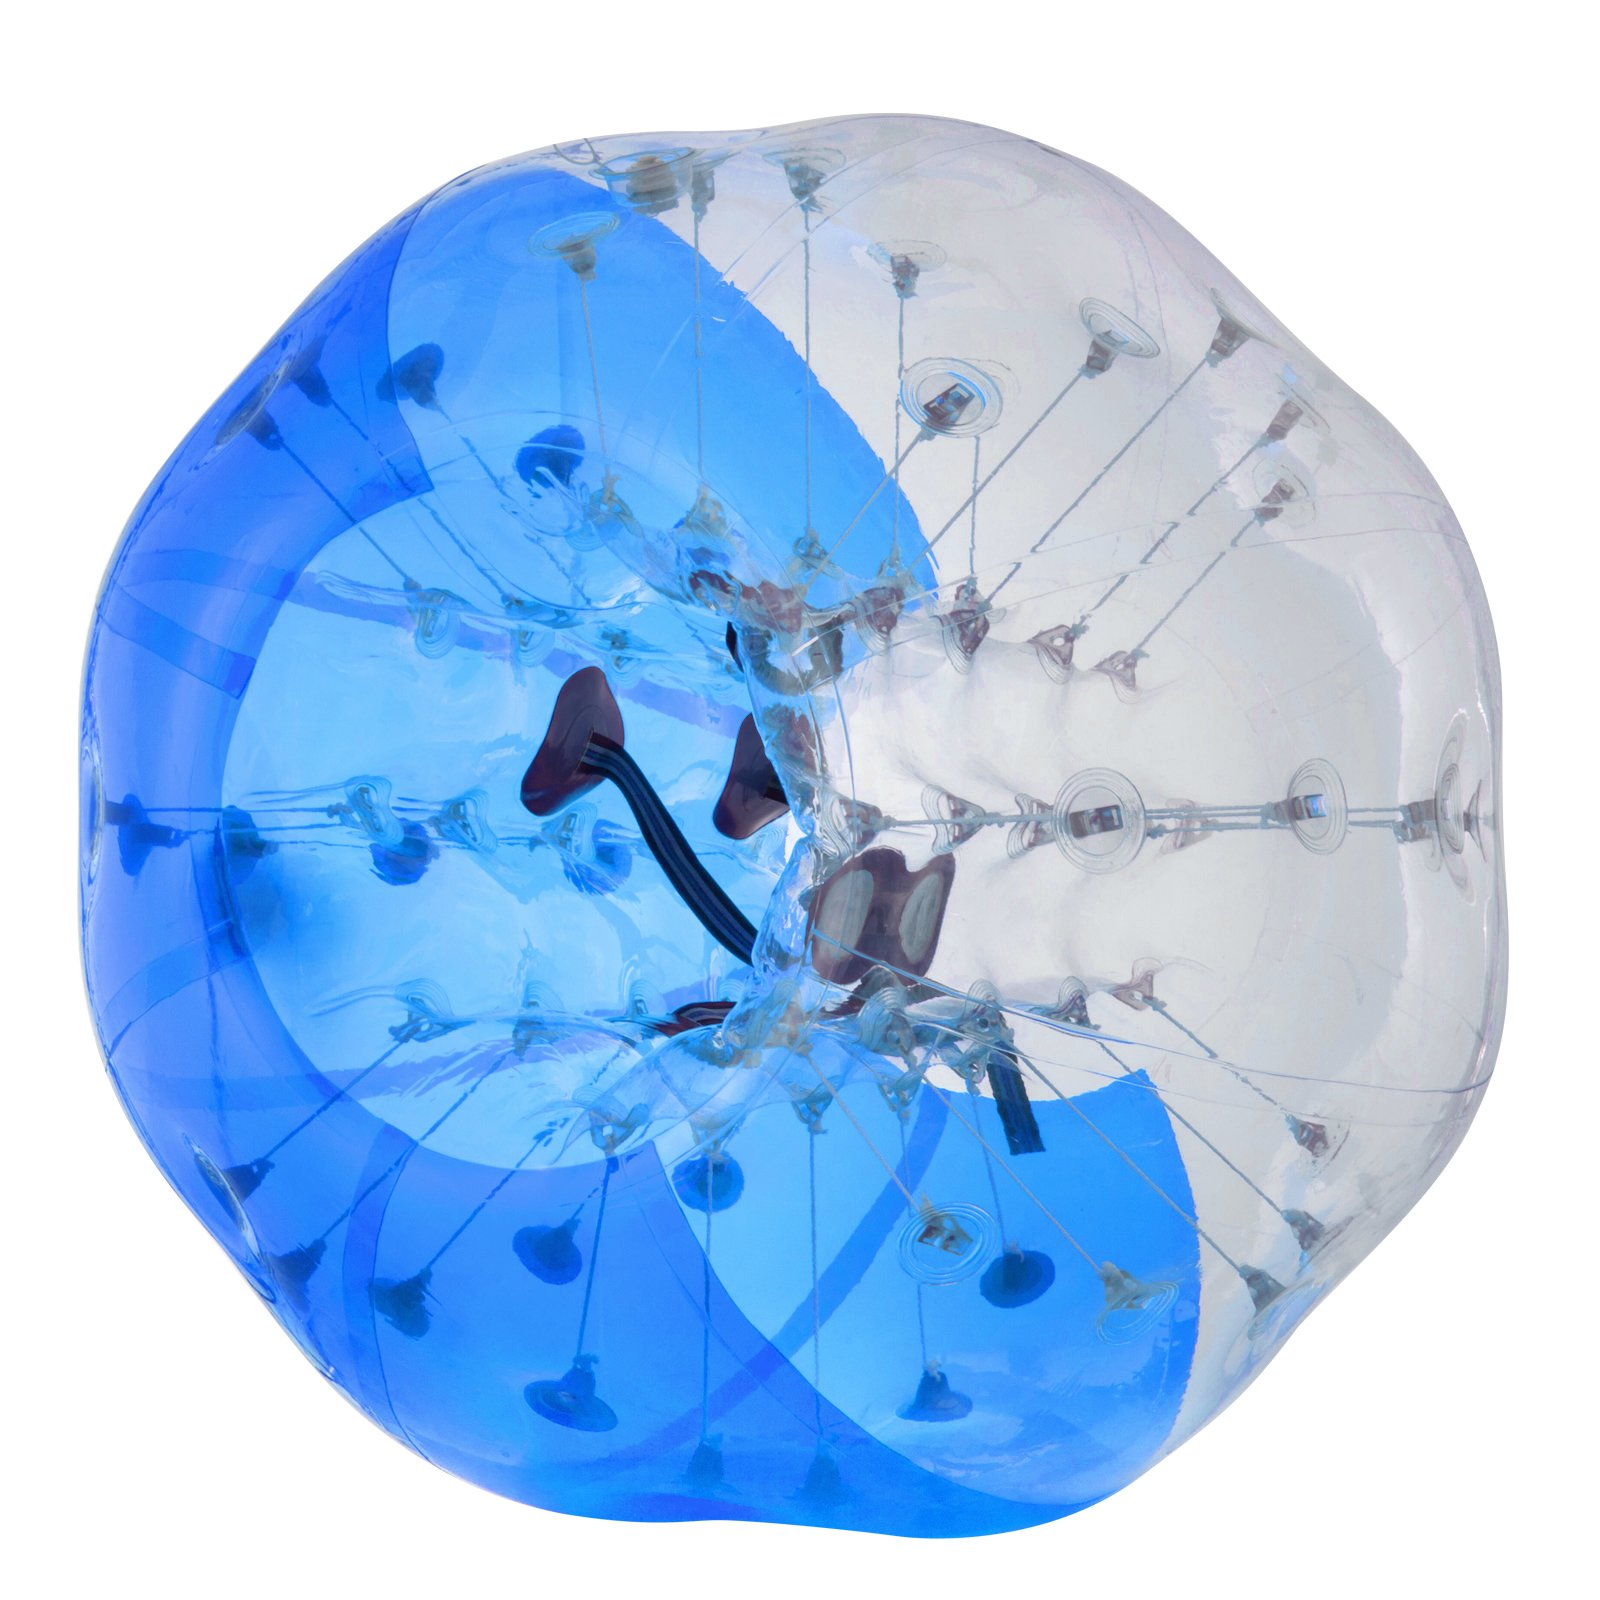 Happybuy Inflatable Bumper Ball 1.2M/4ft 1.5M/5ft Diameter Bubble Soccer Ball Blow Up Toy in 5 Min Inflatable Bumper Bubble Balls for Adults or Child (Half Blue, 5ft) by Happybuy (Image #2)